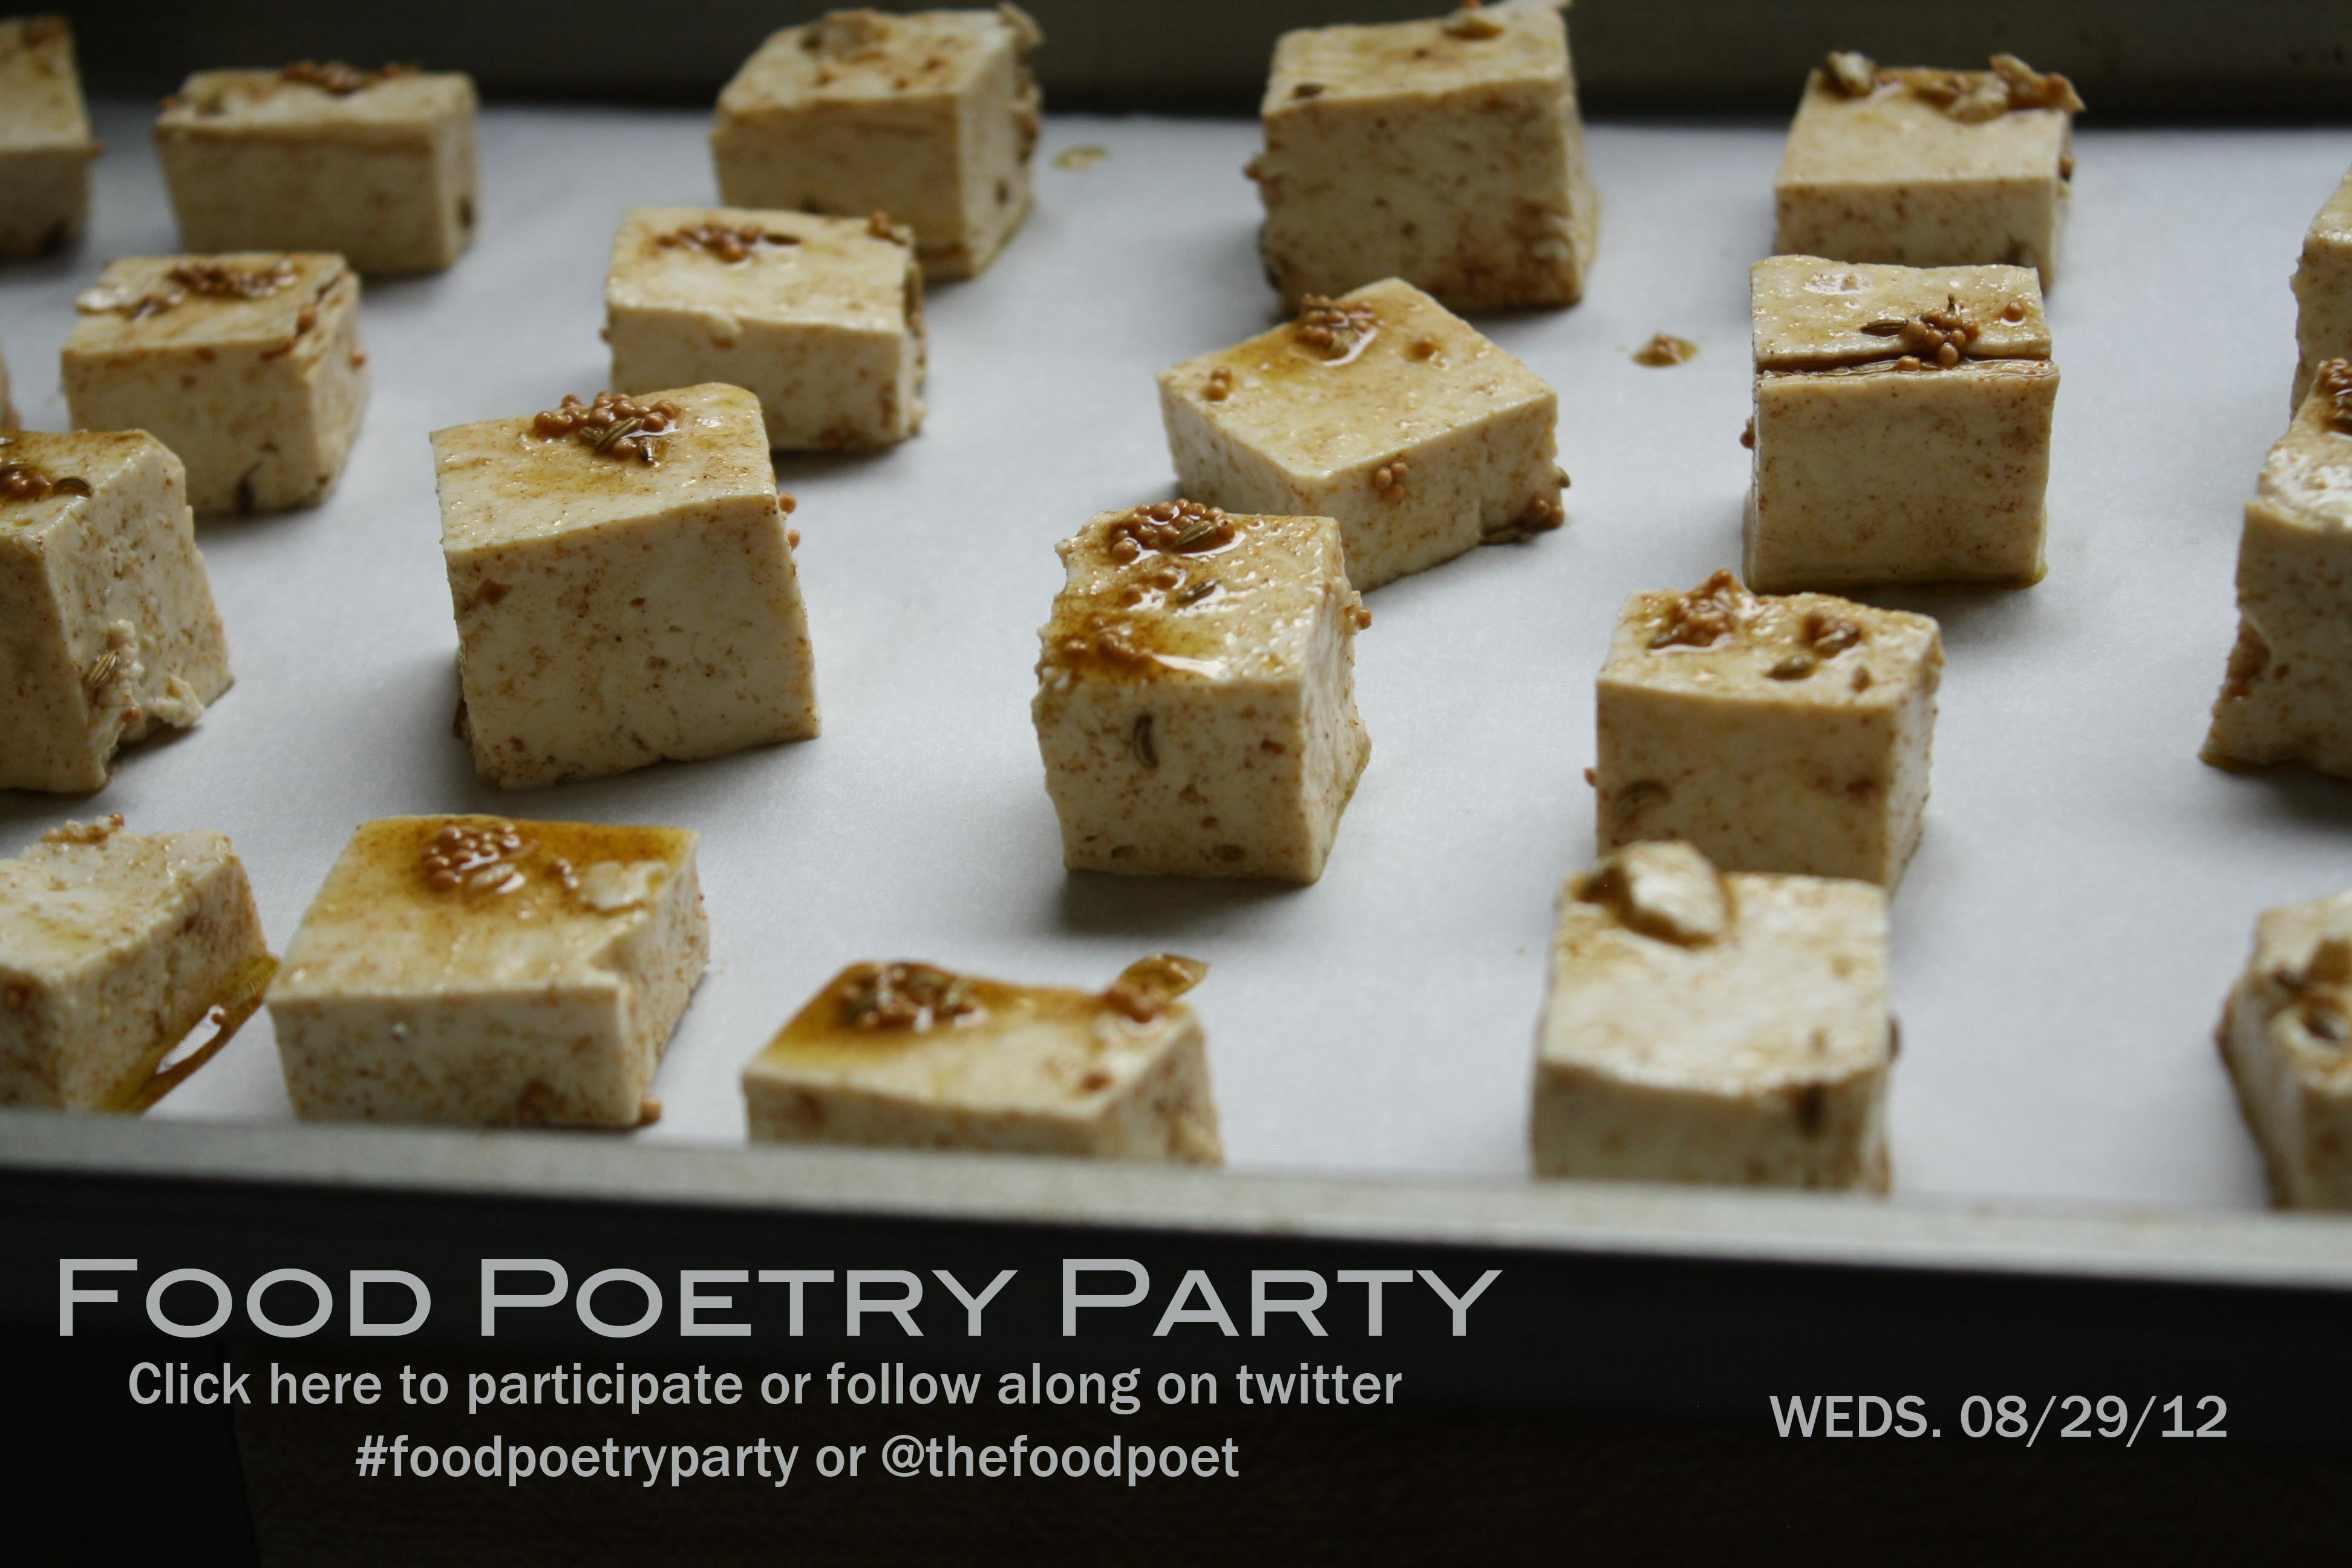 Food Poetry Party